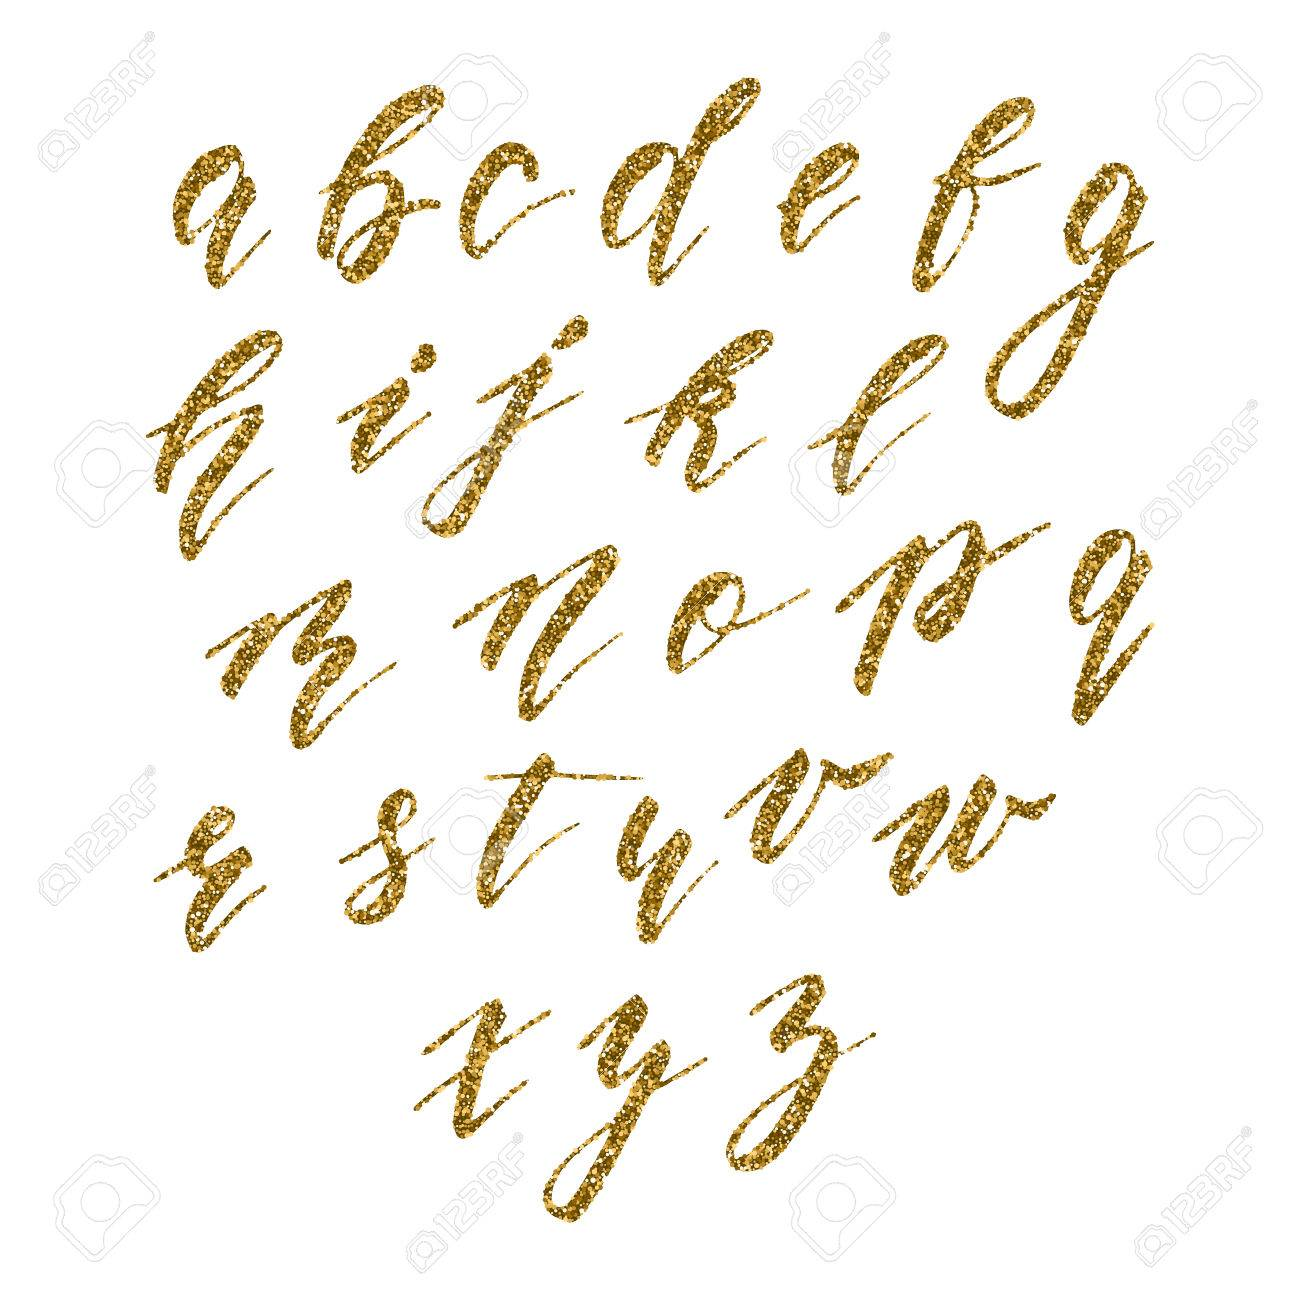 Hand drawn english calligraphic alphabet with gold glitter texture